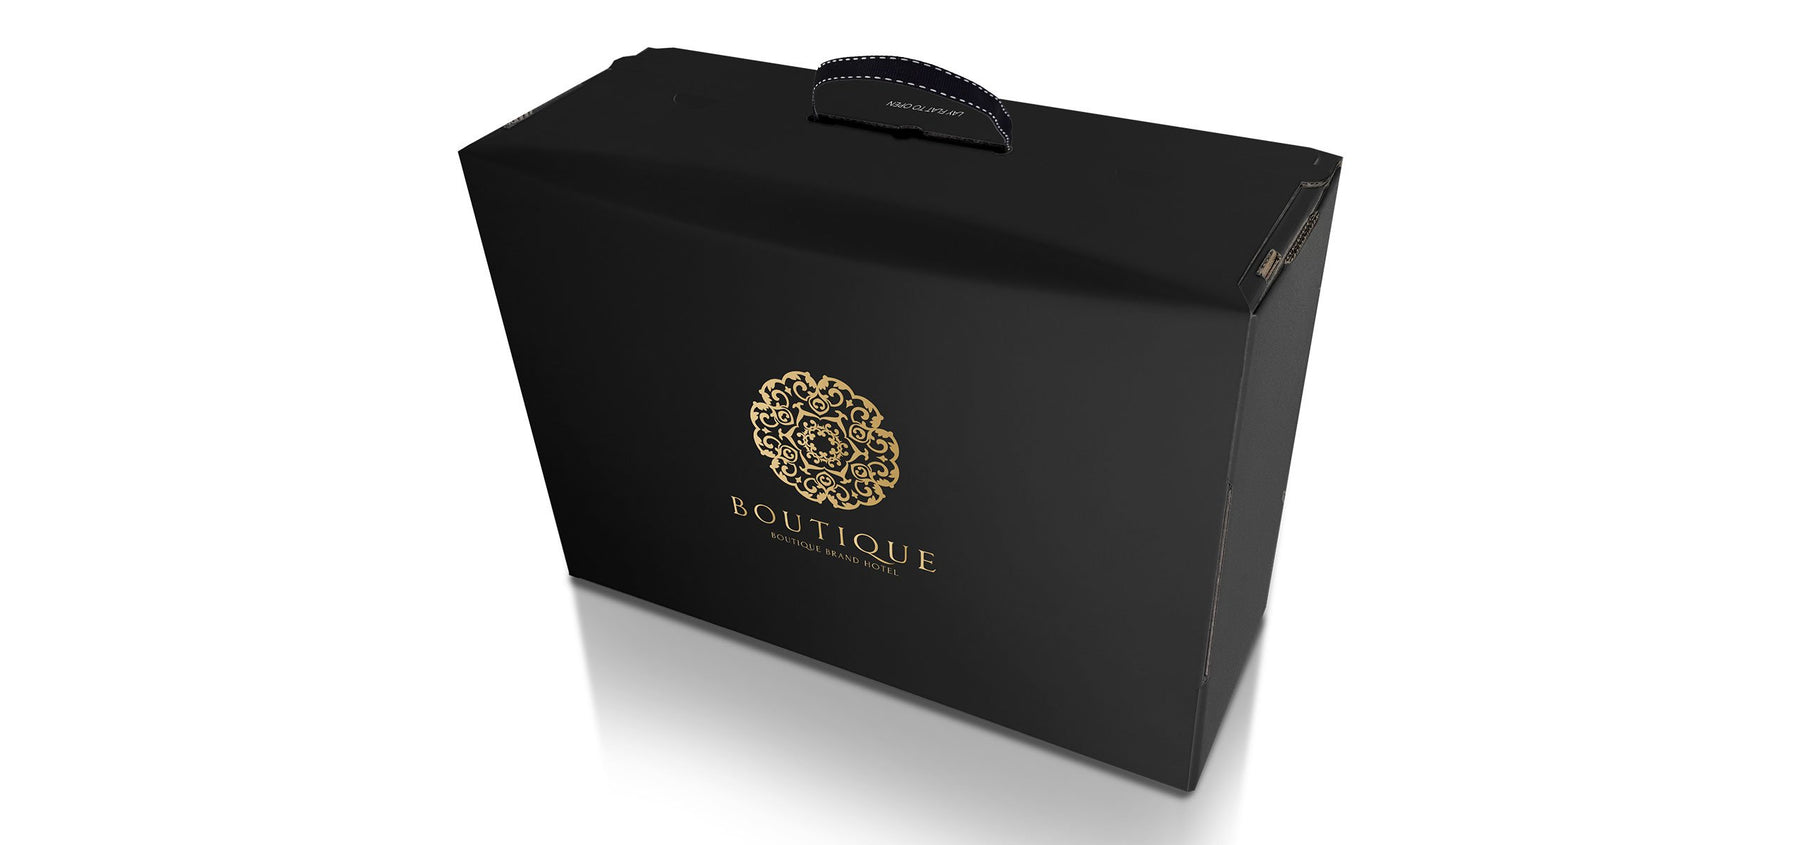 High end luxury packaging for premium brands. Gold embossed on silk black, with cotton carry handle and unique fifth corner design. Manufactured in the UK